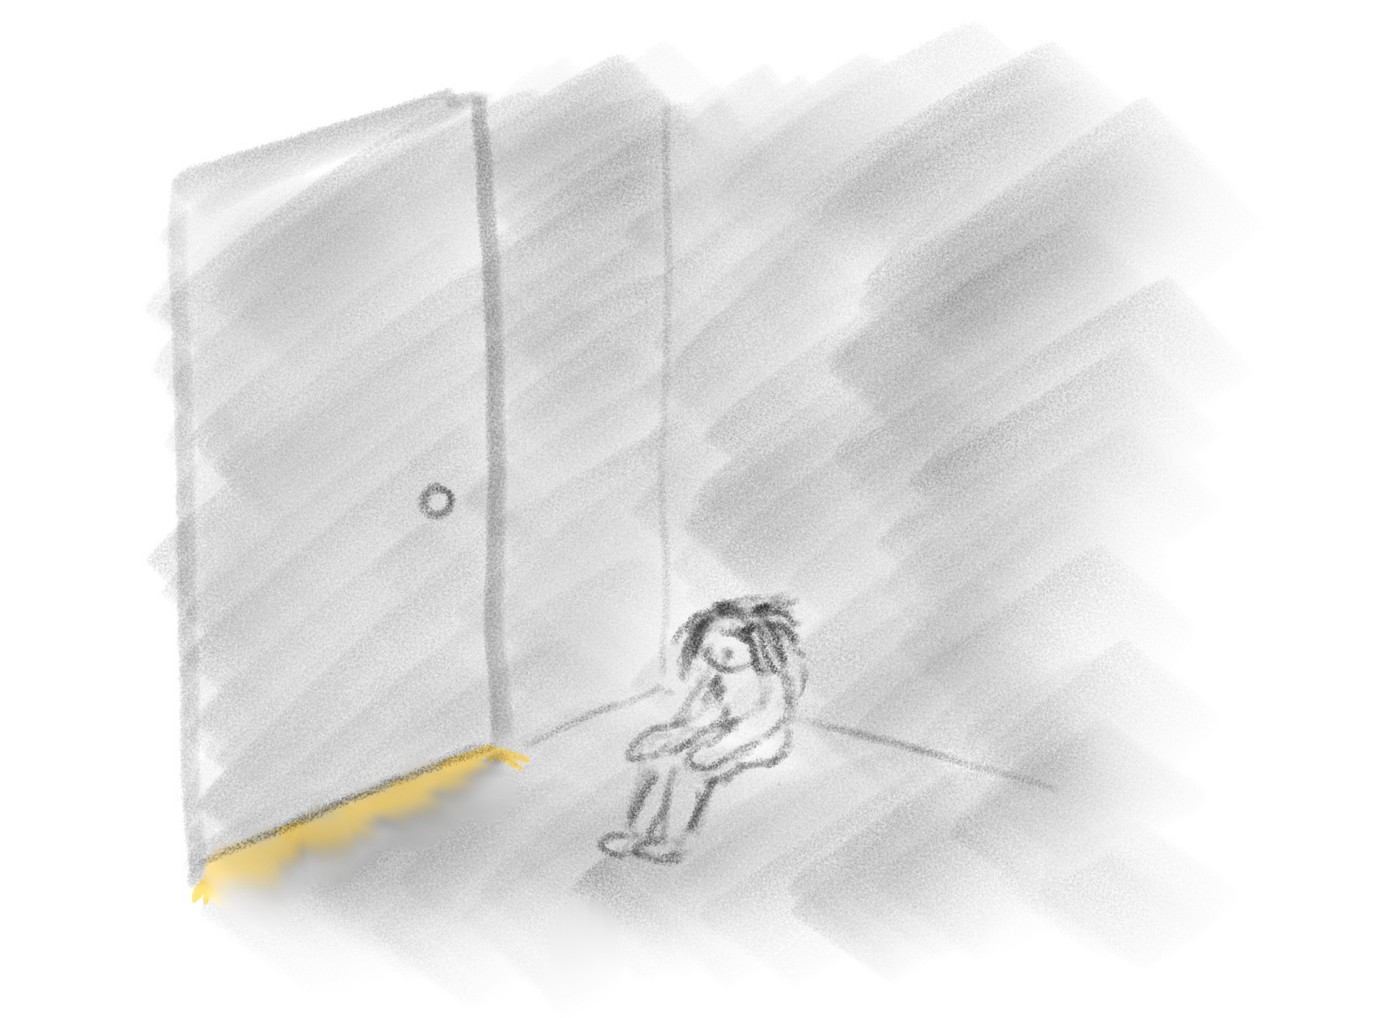 A sad, scared child hiding in a dark room with yellow light shining under the door frame.